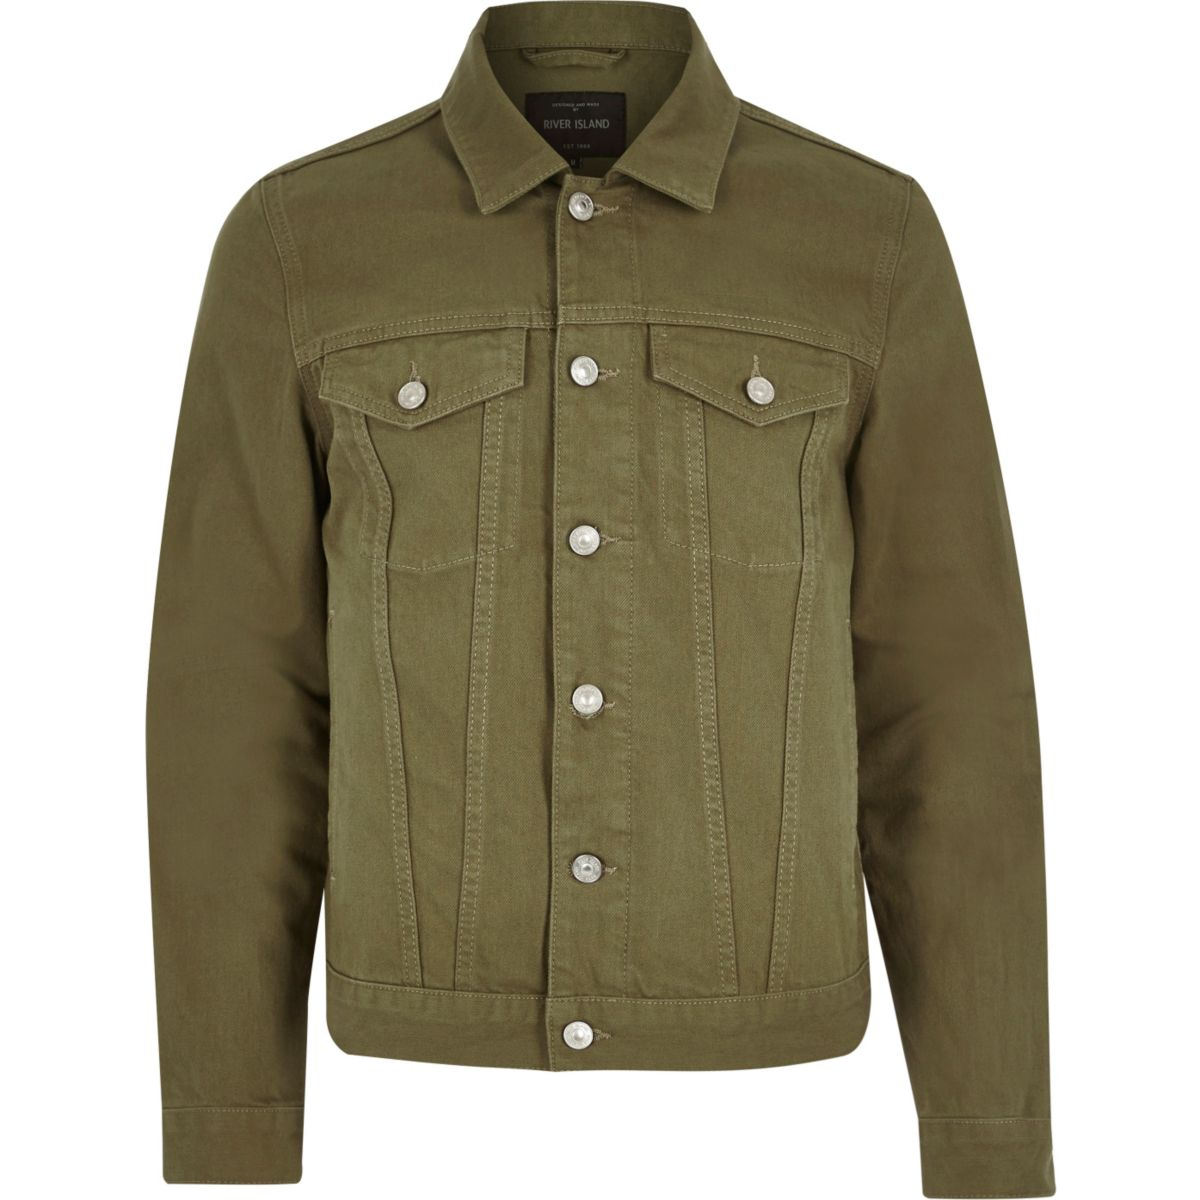 Dark green denim jacket - Coats & Jackets - Sale - men